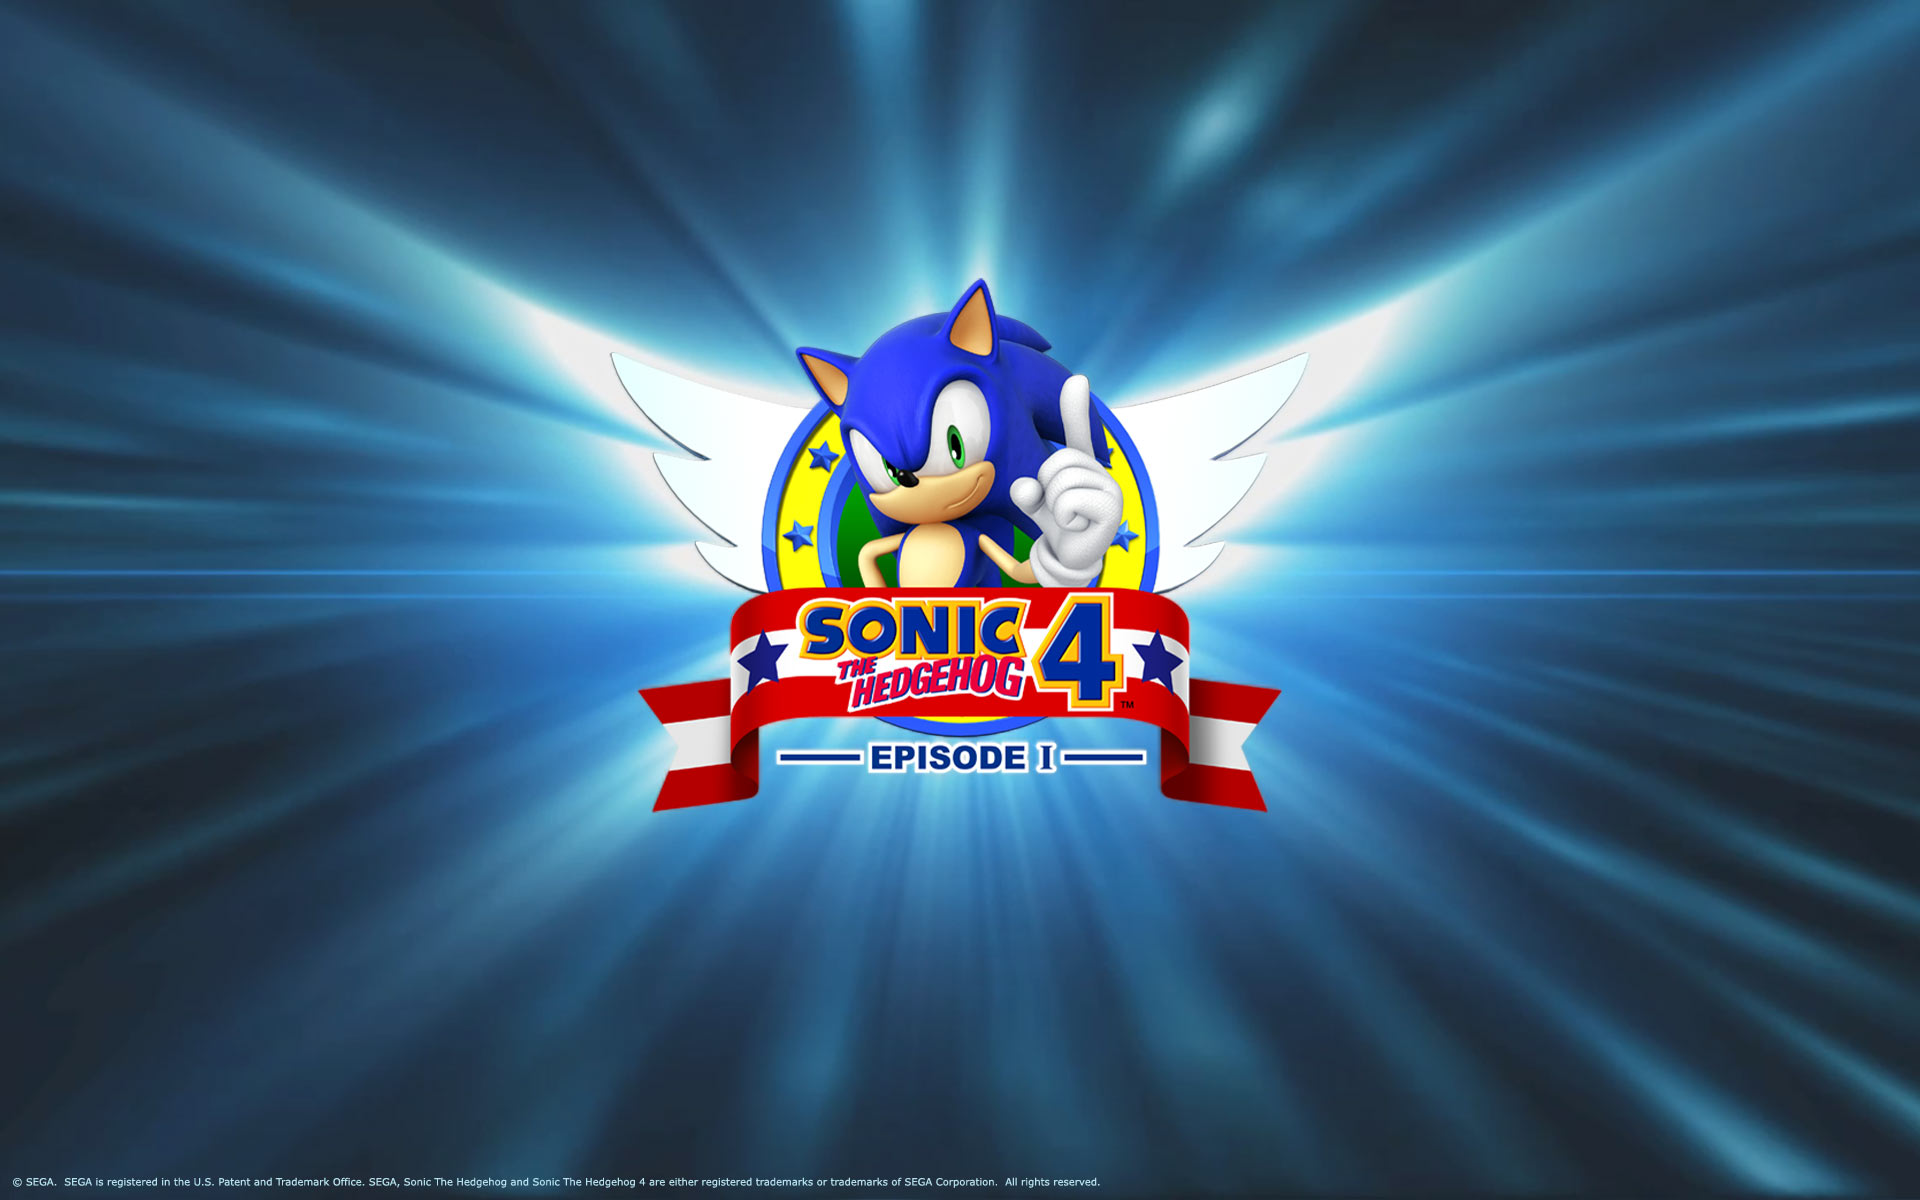 Sonic the Hedgehog 4 Episode I   Wallpaper   Sonic 4 Logo 1610 1920x1200